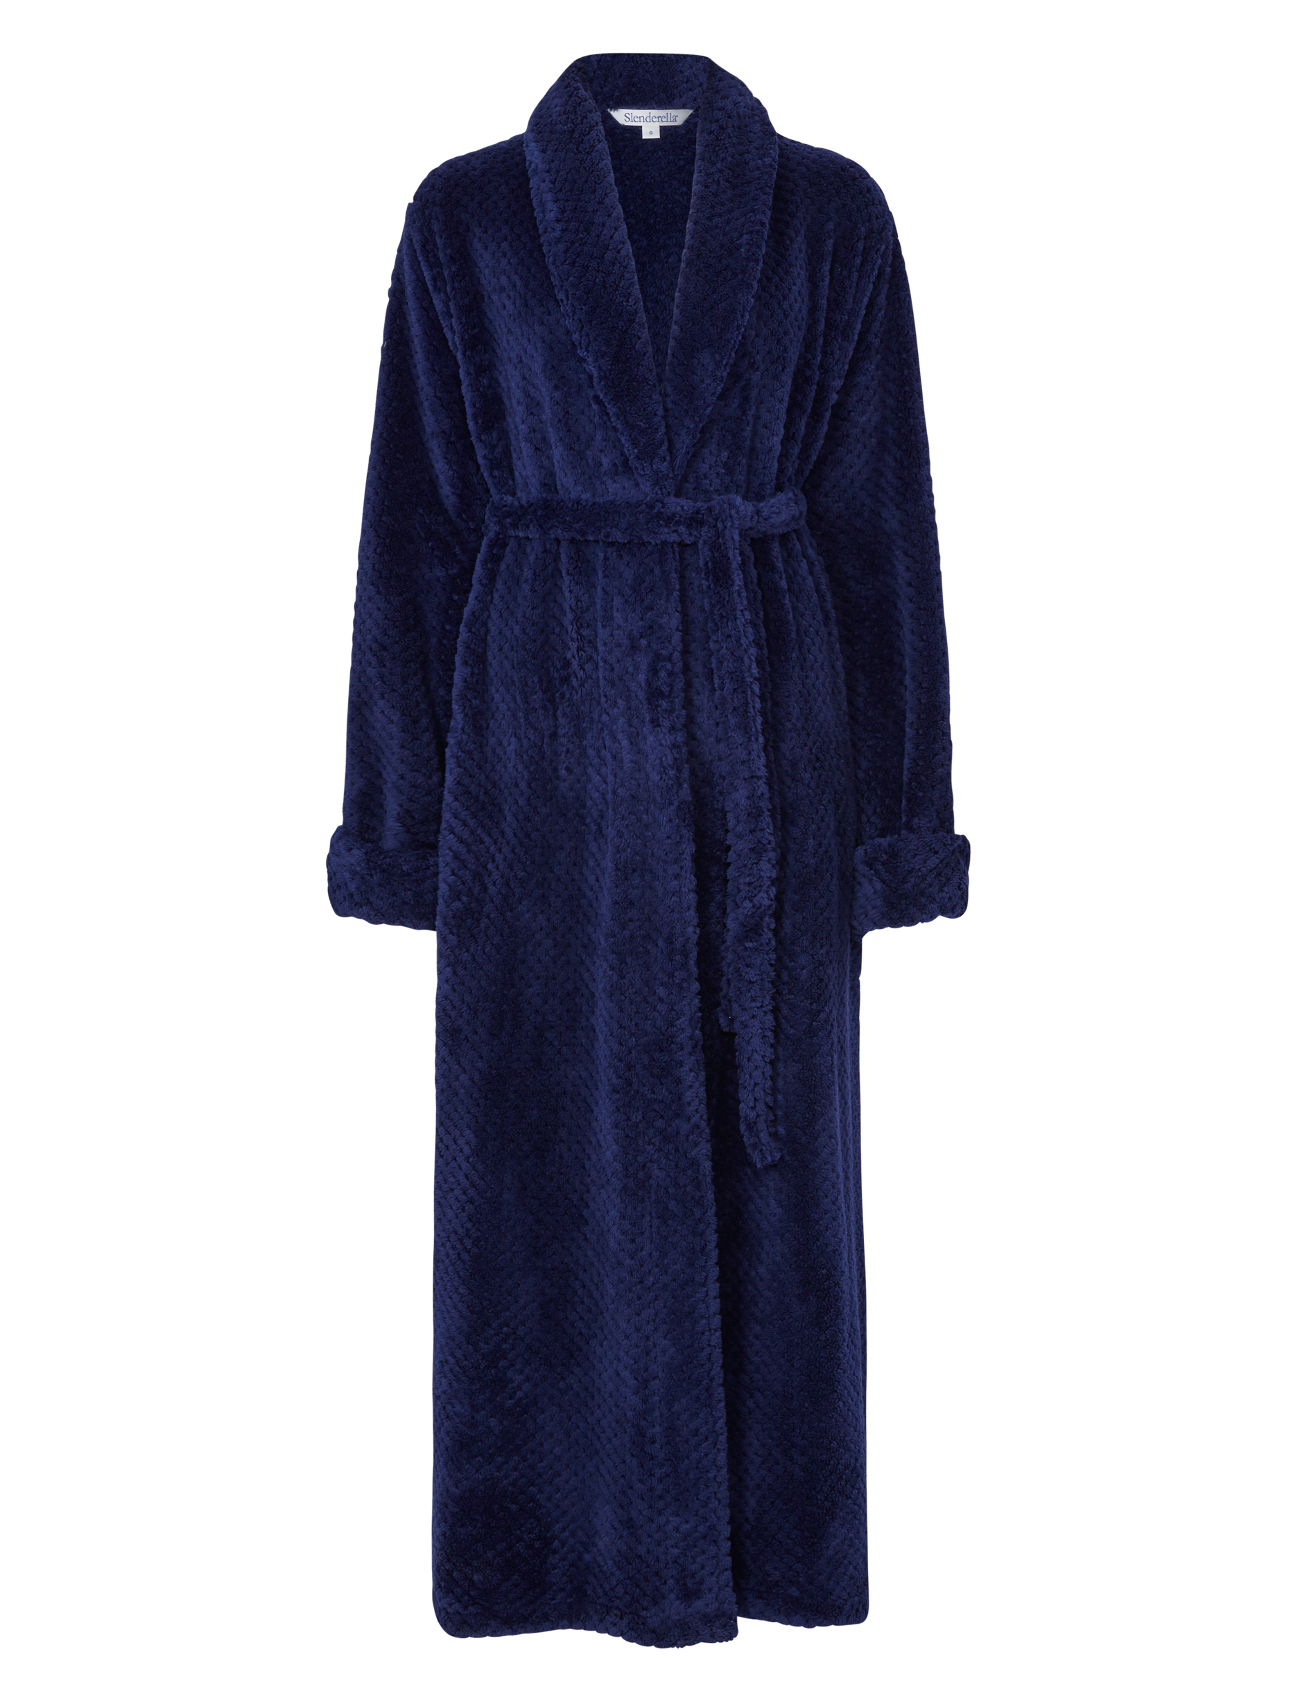 Women Men's Long Housecoat Fleece Long Bath Robe Dressing Gown Coral Pajamas New. Unbranded. $ From China. Buy It Now. Free Shipping. Womens Follow That Dream Short Hooded Fleece Dressing Gowns with Hood Mint Plum. Brand New. $ From United Kingdom. Buy It Now +$ shipping.